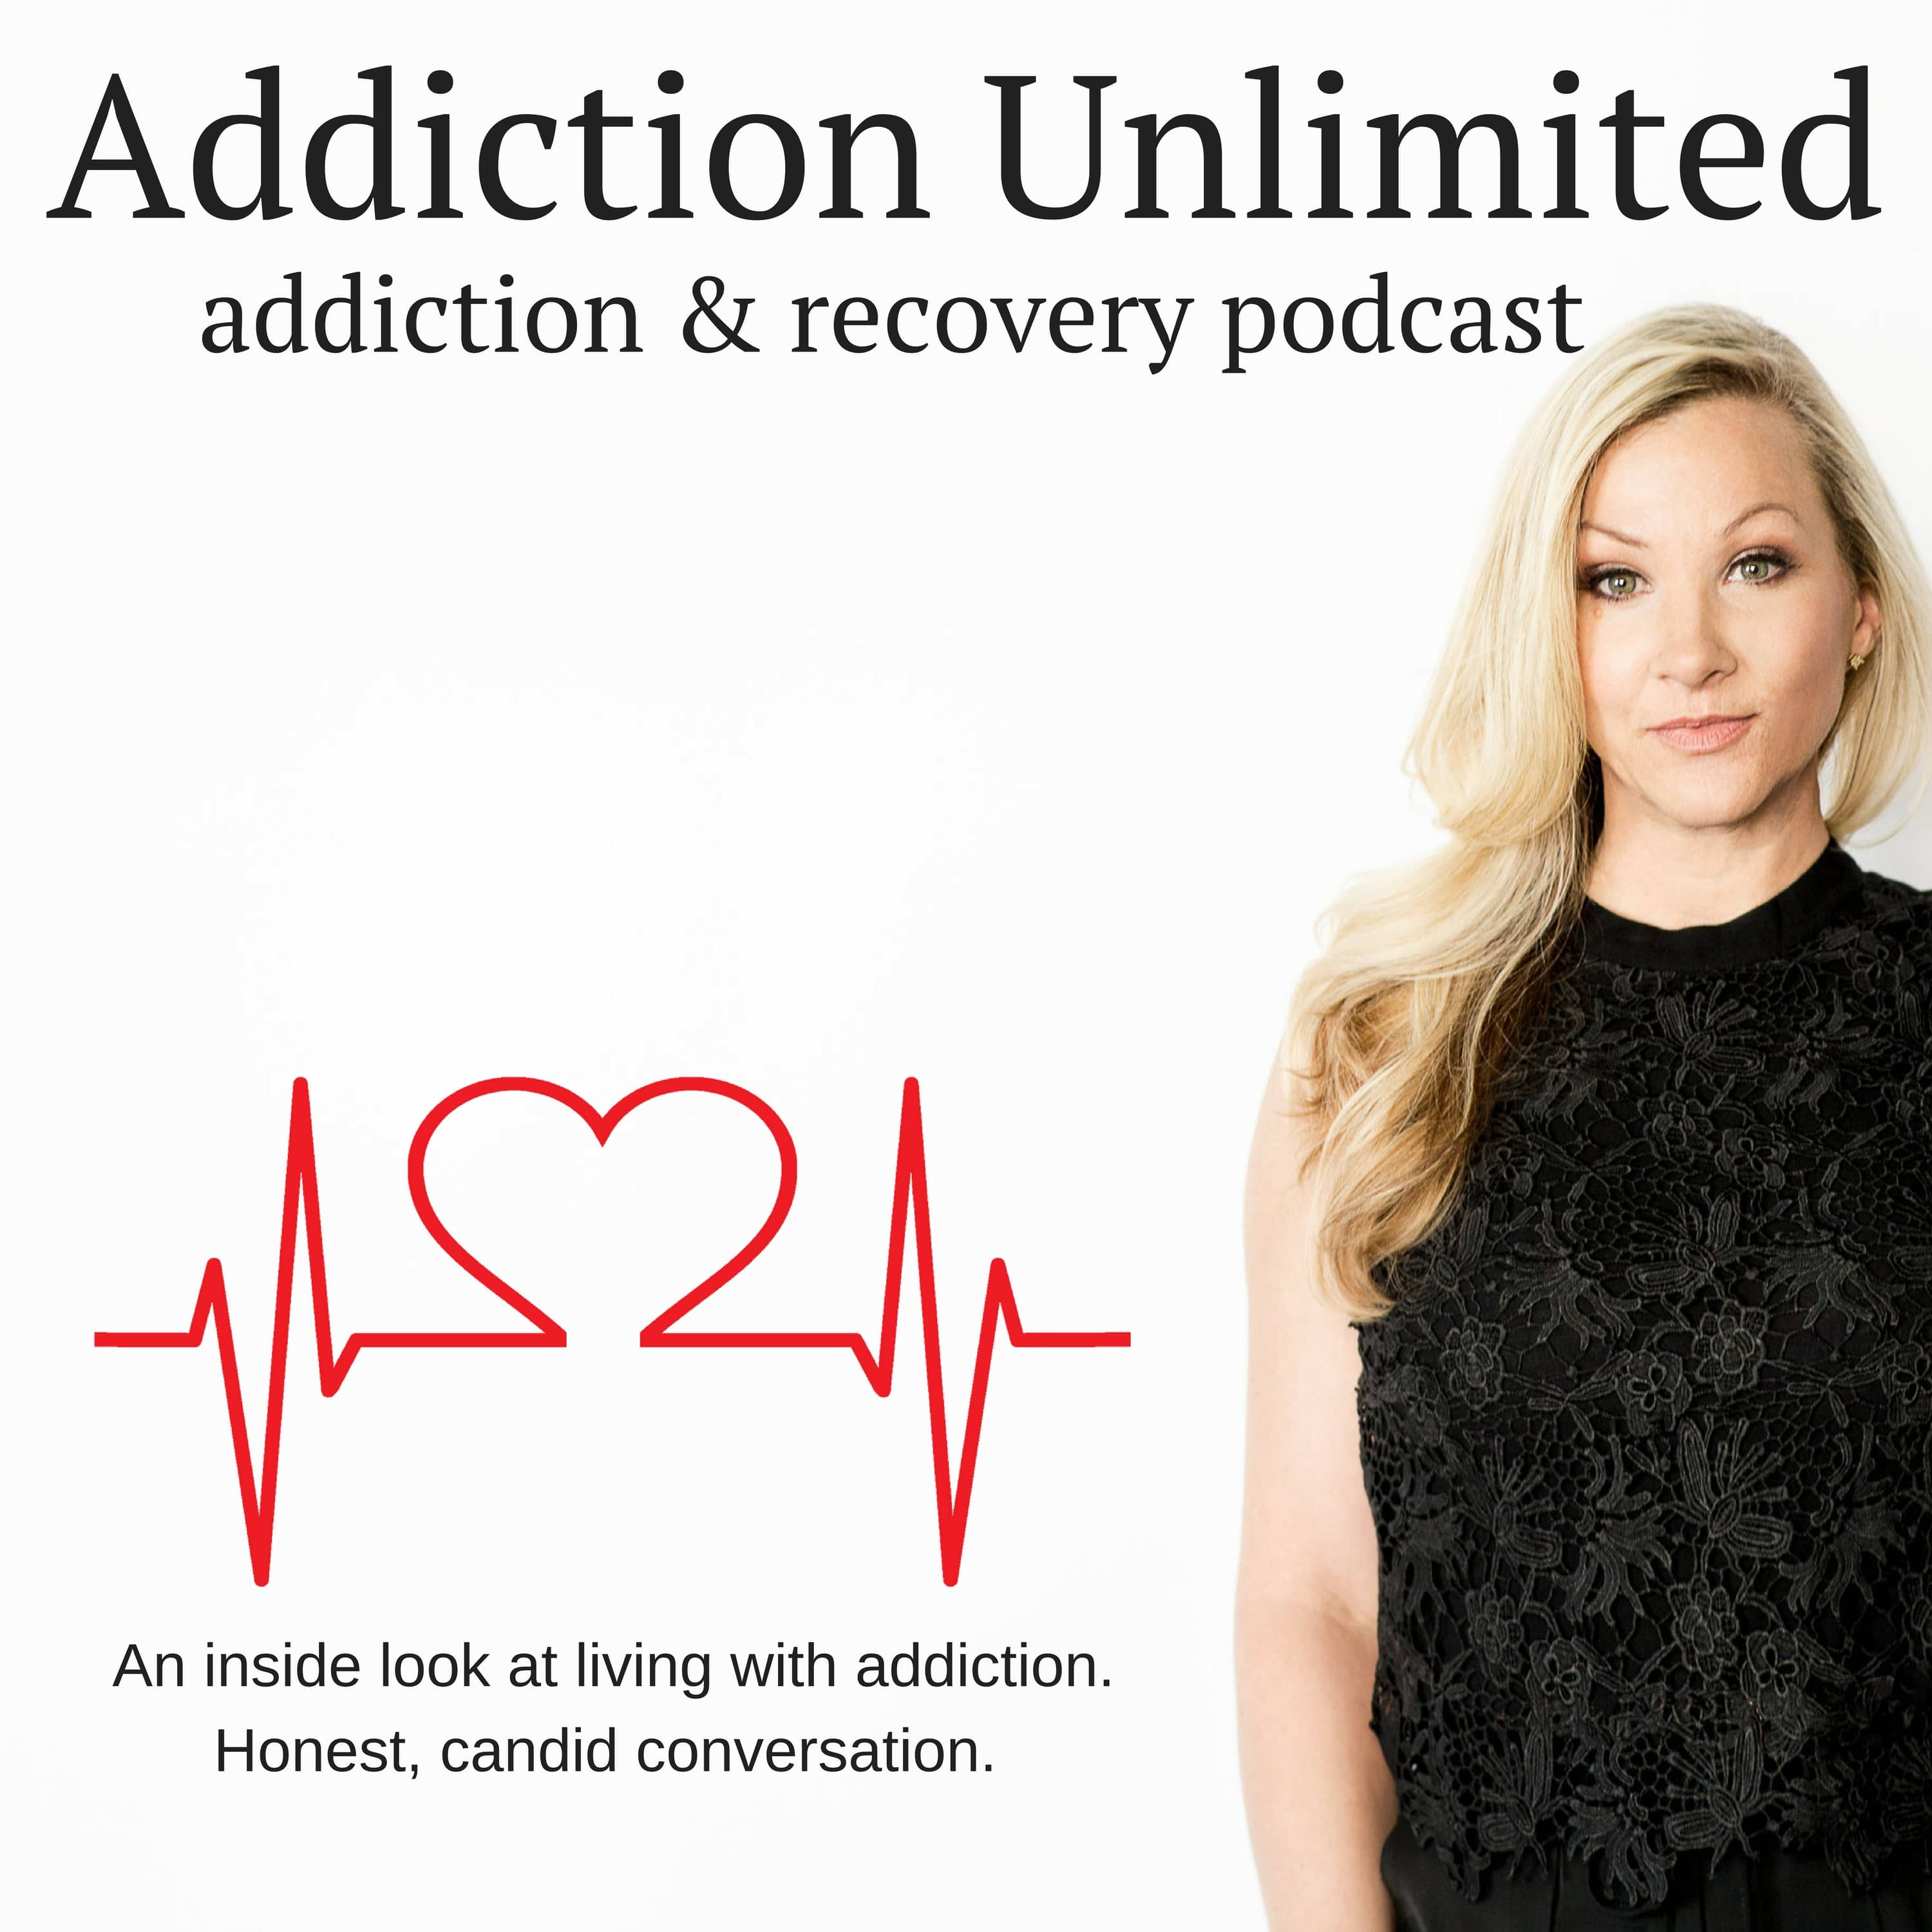 Addiction Unlimited Podcast | Alcoholism | 12 Steps | Living Sober | Addiction Treatment